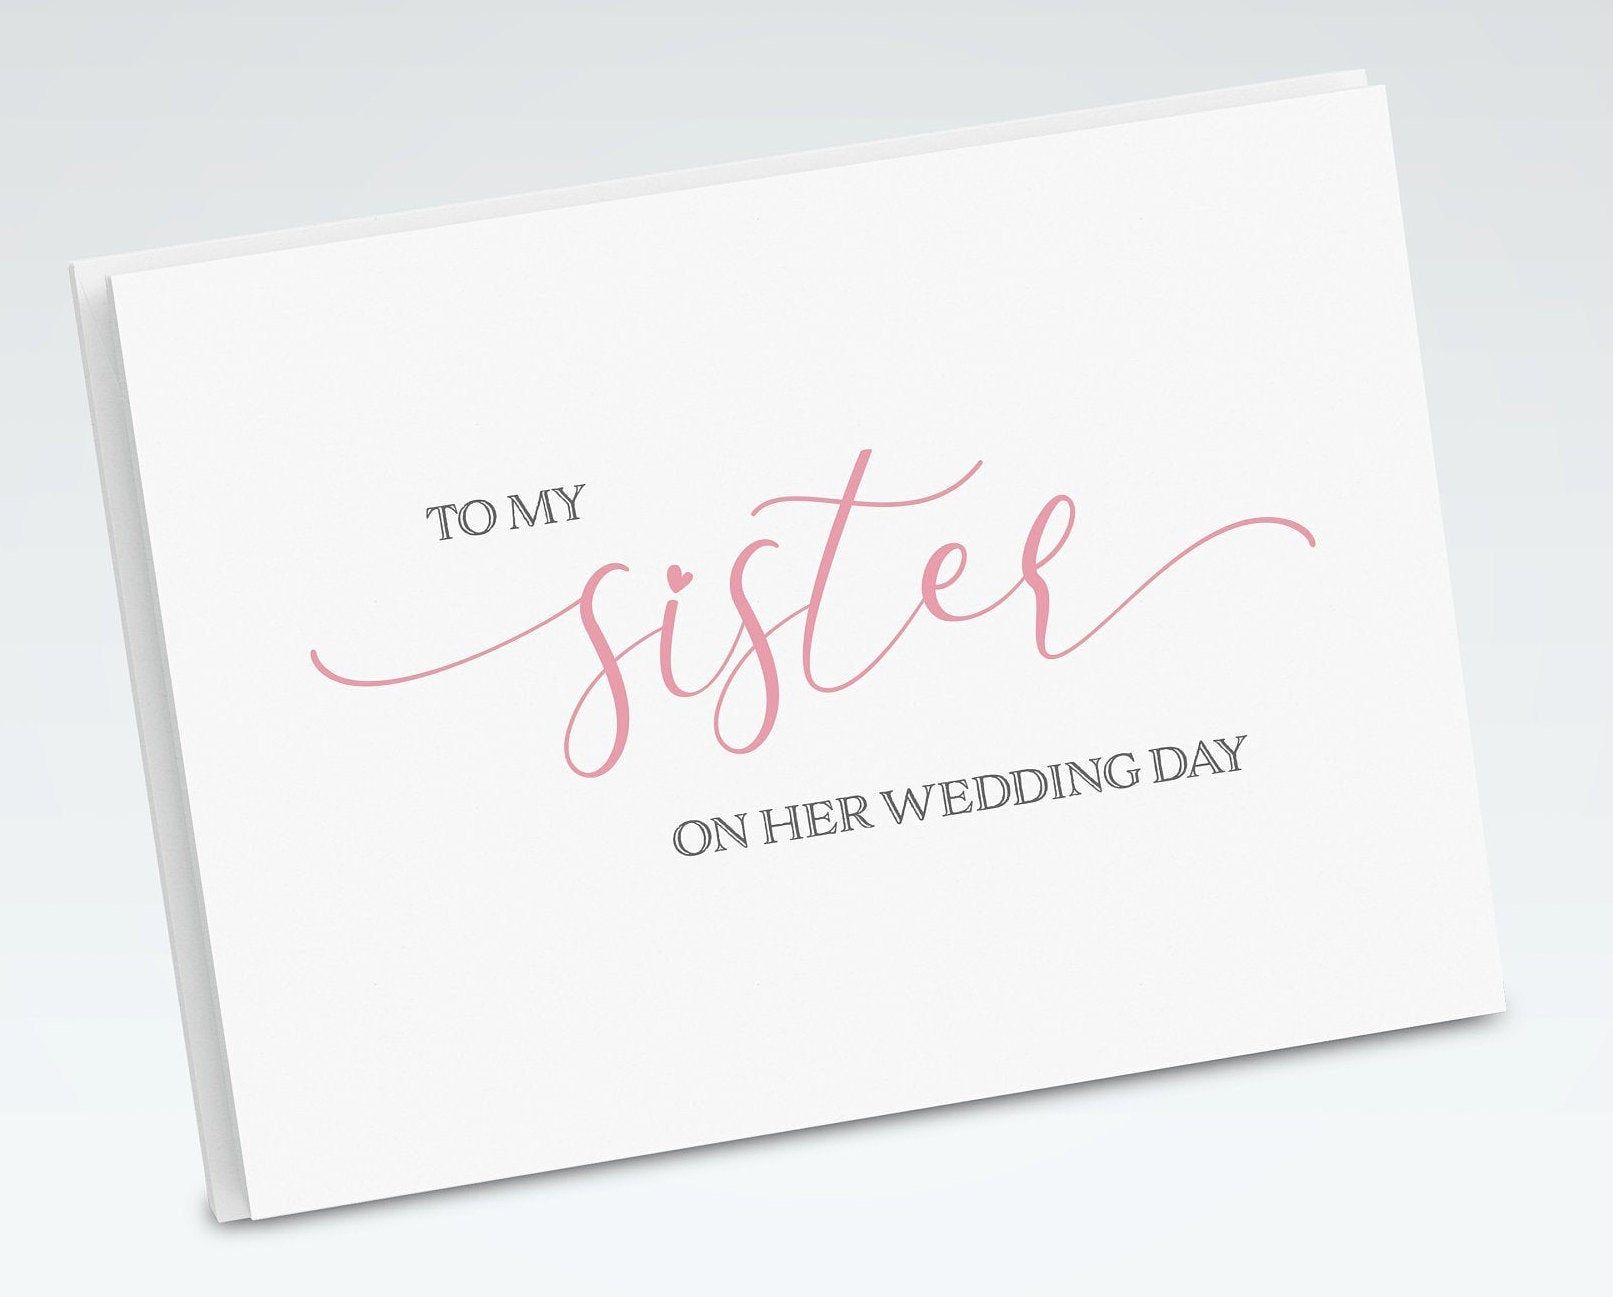 Thank You Cards for Wedding Day Sister Cards Sister Wedding Day Cards To My Sister On My Wedding Day Sister Wedding Card